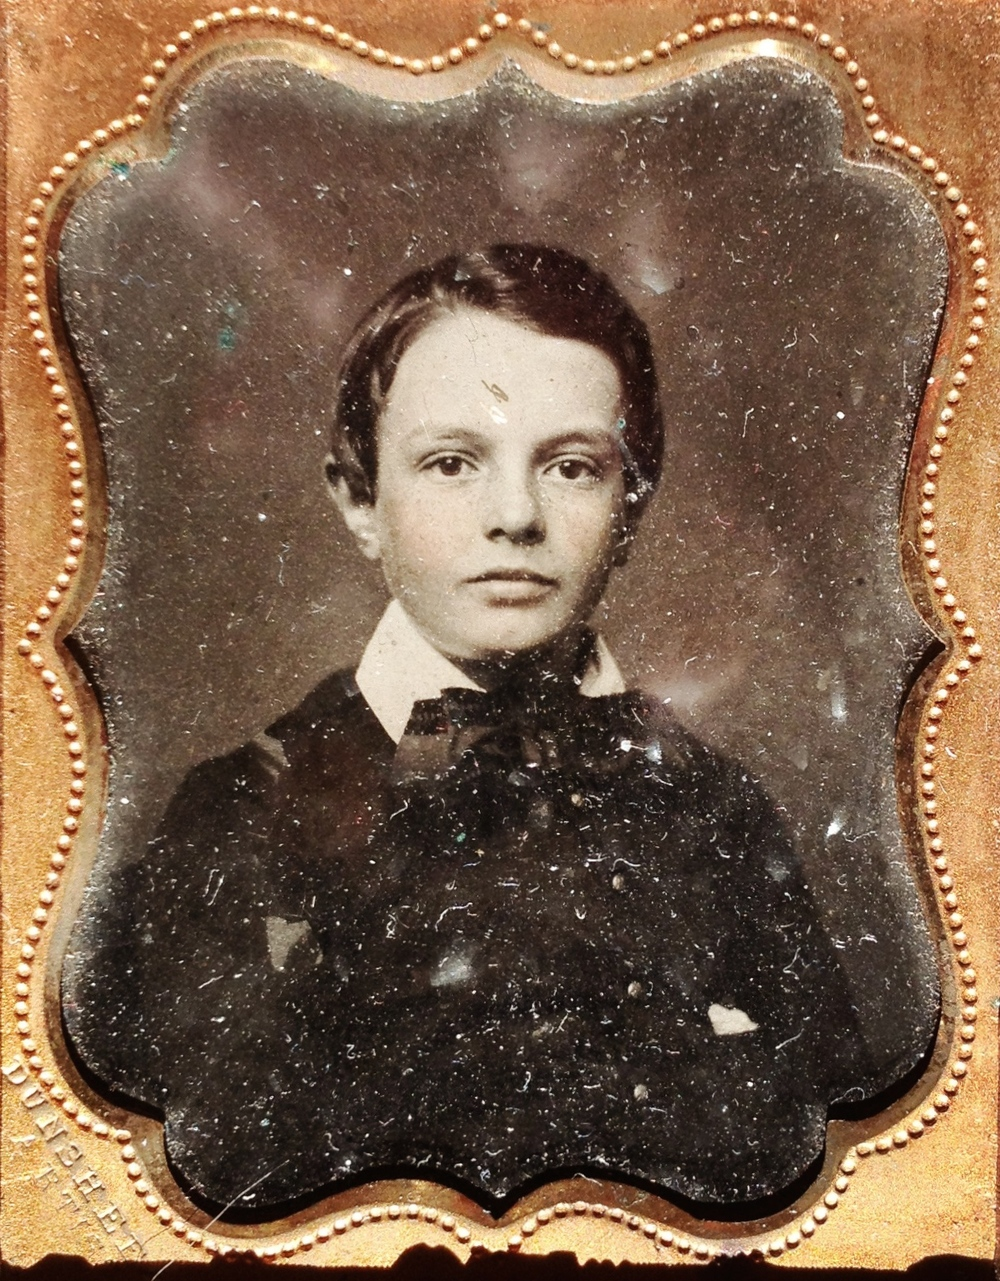 Again and again, Leland Thankful Smith was reminded of his birth Found ambrotype, September 2012  Copyright © Tennyson Woodbridge, 1963 to present. All appropriation rights reserved